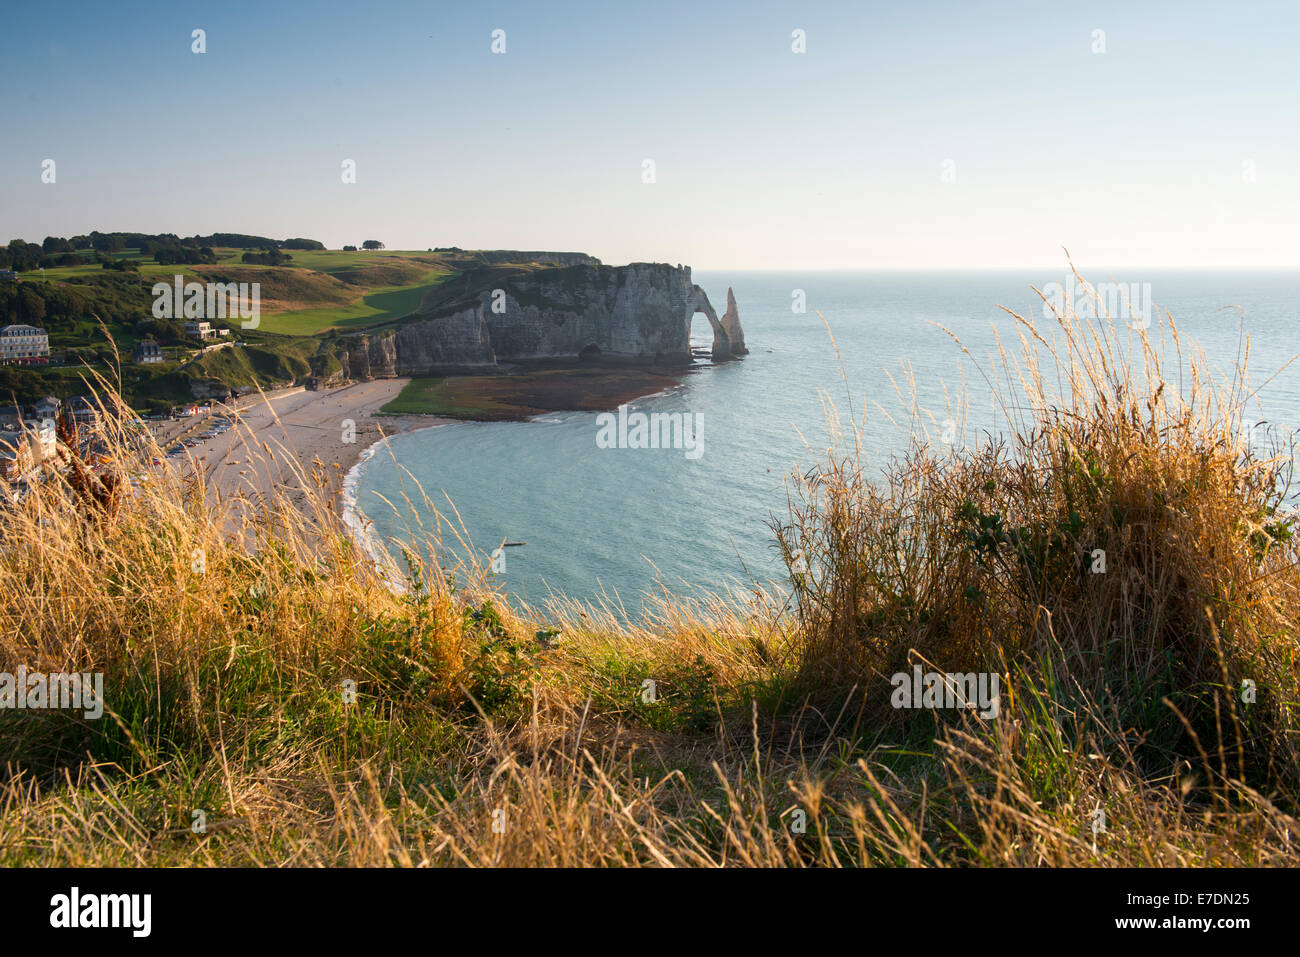 A view down onto the beach at Etratat on the coast of Normandy in Northern France EU - Stock Image